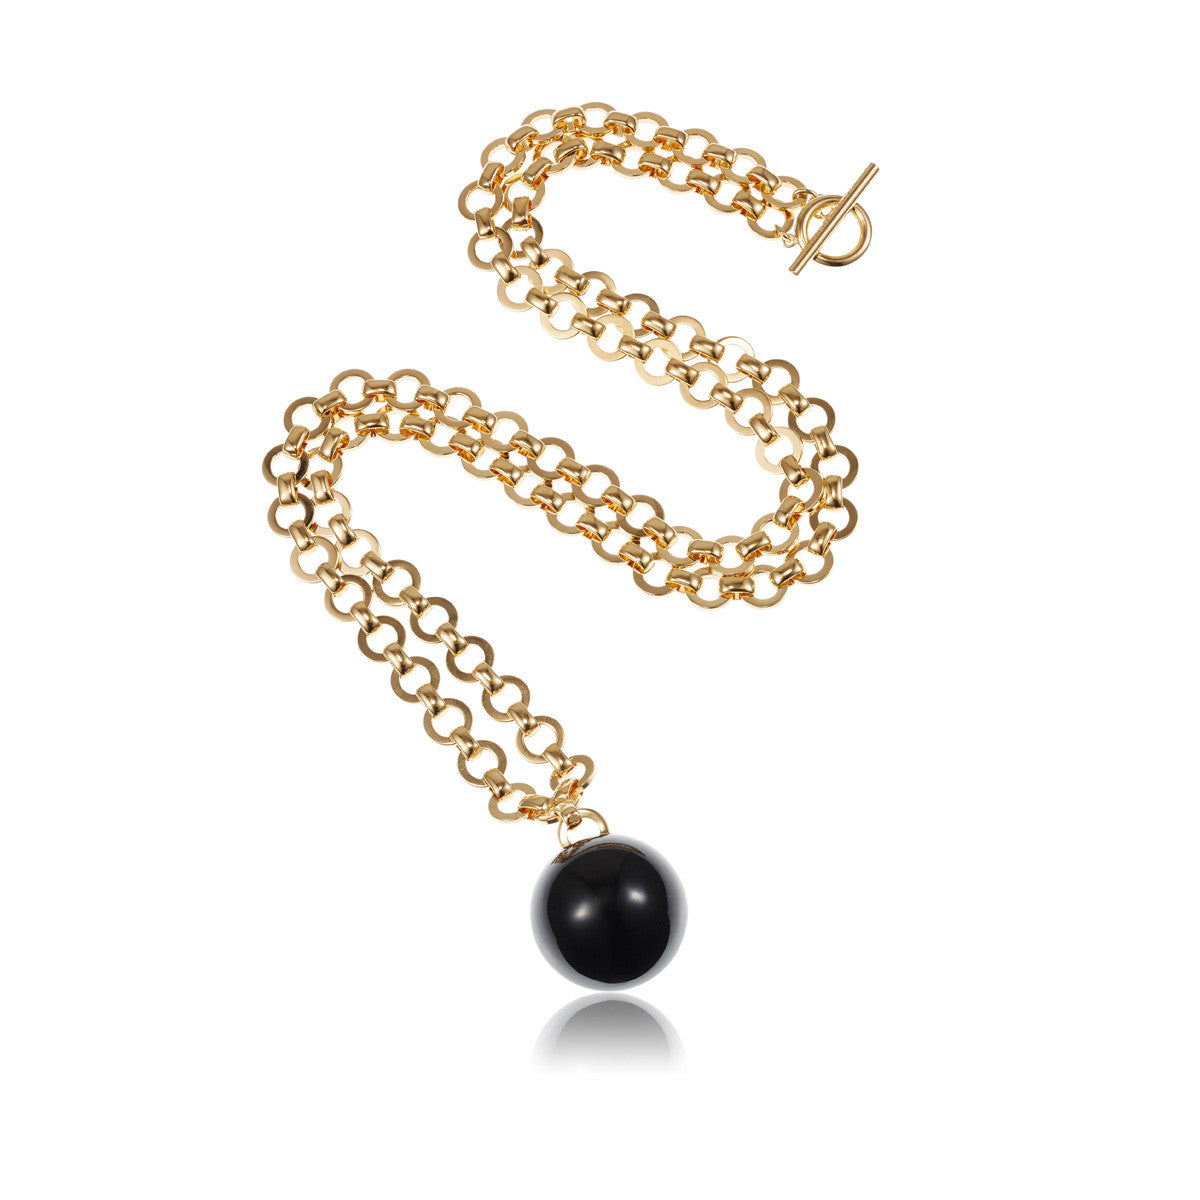 Solid brass, 18K gold plated Sphera pendant necklace with solid brass link chain and a single stunning natural black onyx sphere - front